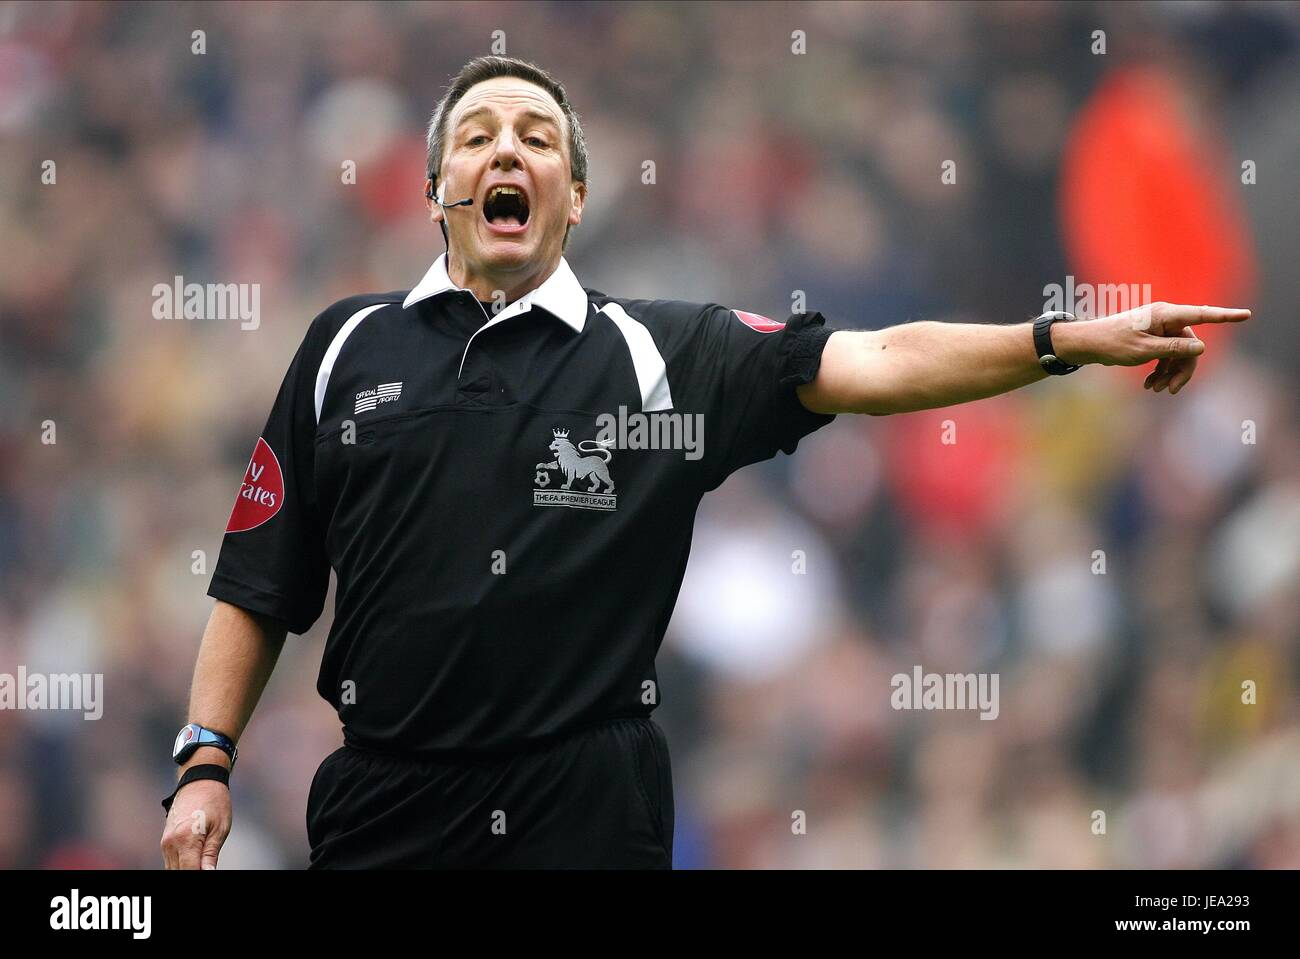 ALAN WILEY PREMIERSHIP REF LIVERPOOL V EVERTON ANFIELD LIVERPOOL ENGLAND 03 February 2007 - Stock Image